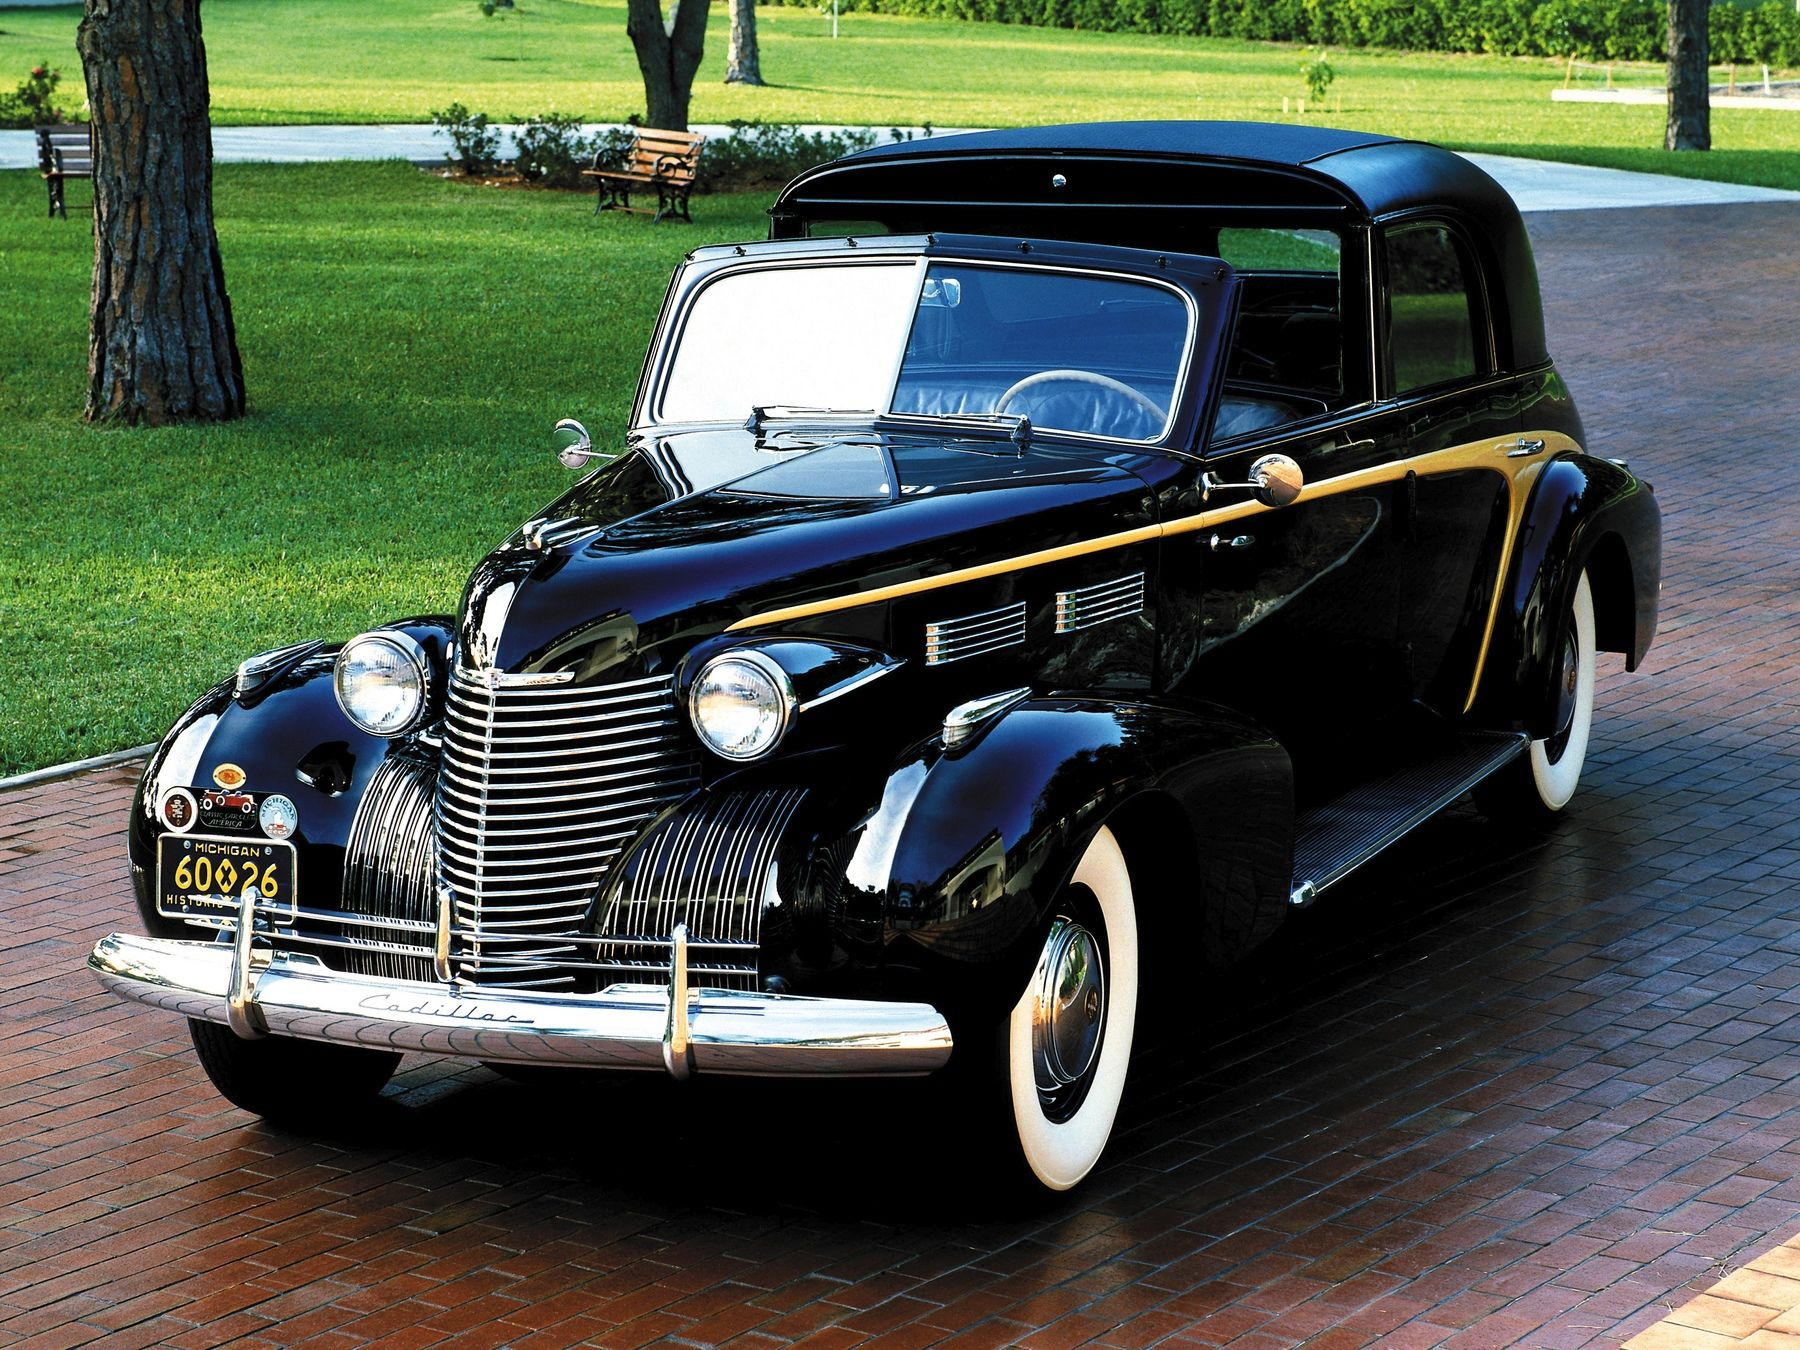 Old Fashioned Cars >> Pin By Susan Lee On Vintage Cars And Not So Vintage Vintage Cars